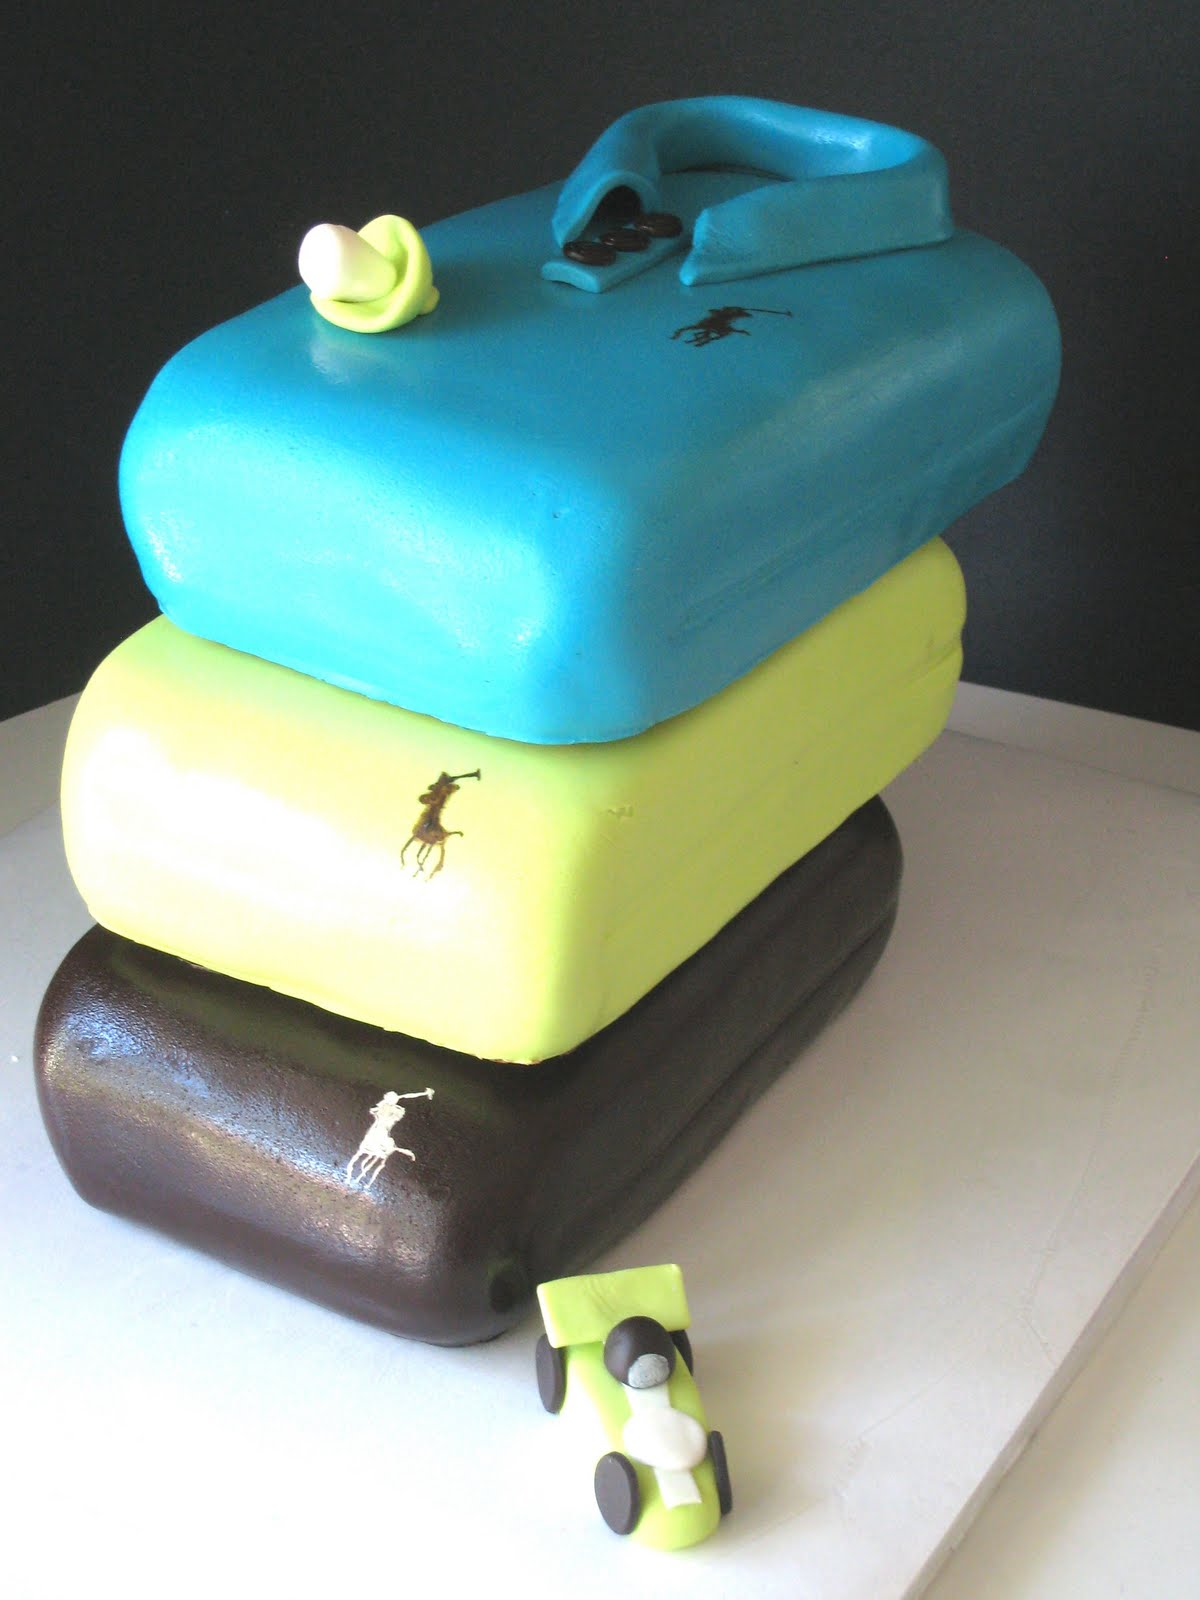 ... Green And Brown), With The Polo Logo On Each Shirt. Accompanying The  Shirts Were Fondant Decorations Of A Toy Car And A Pacifier   Adorable  Touches!